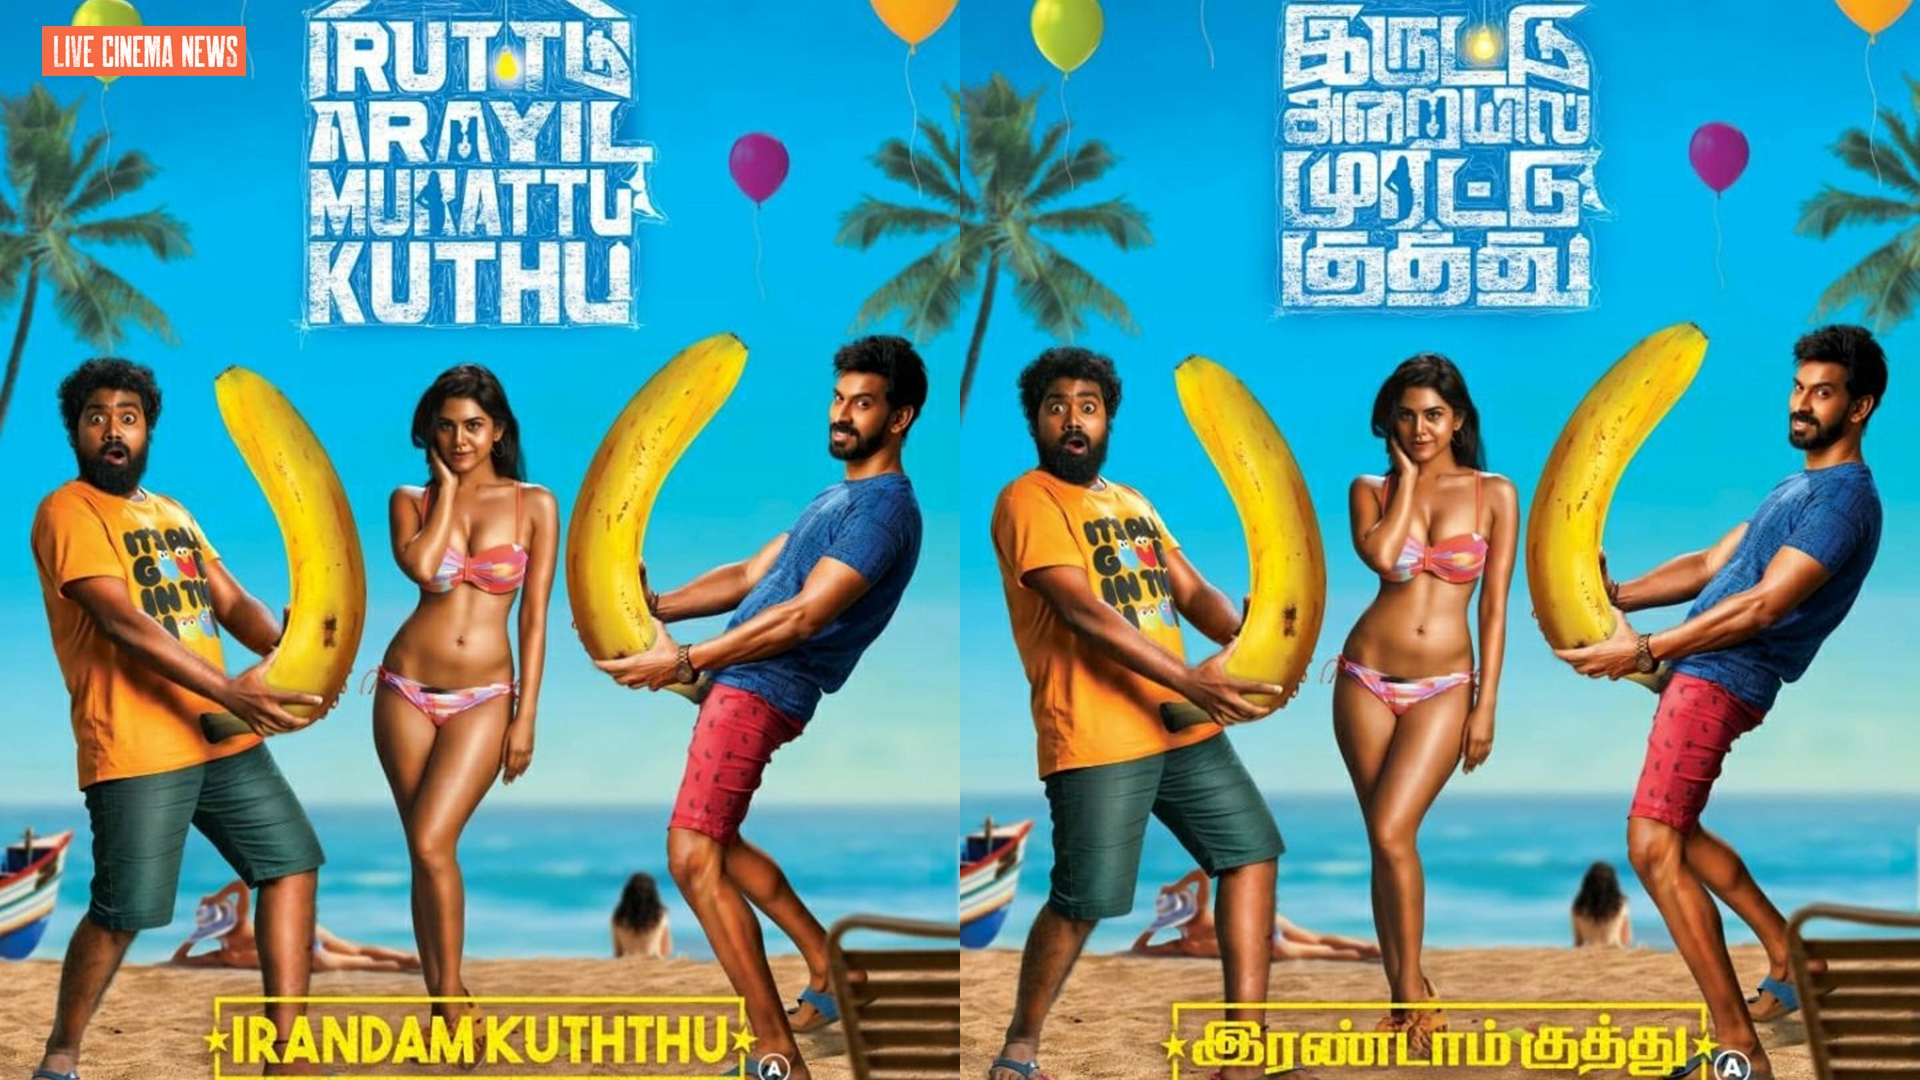 Irandam Kuthu: The sequel to Gautham Karthik's Adult comedy is here